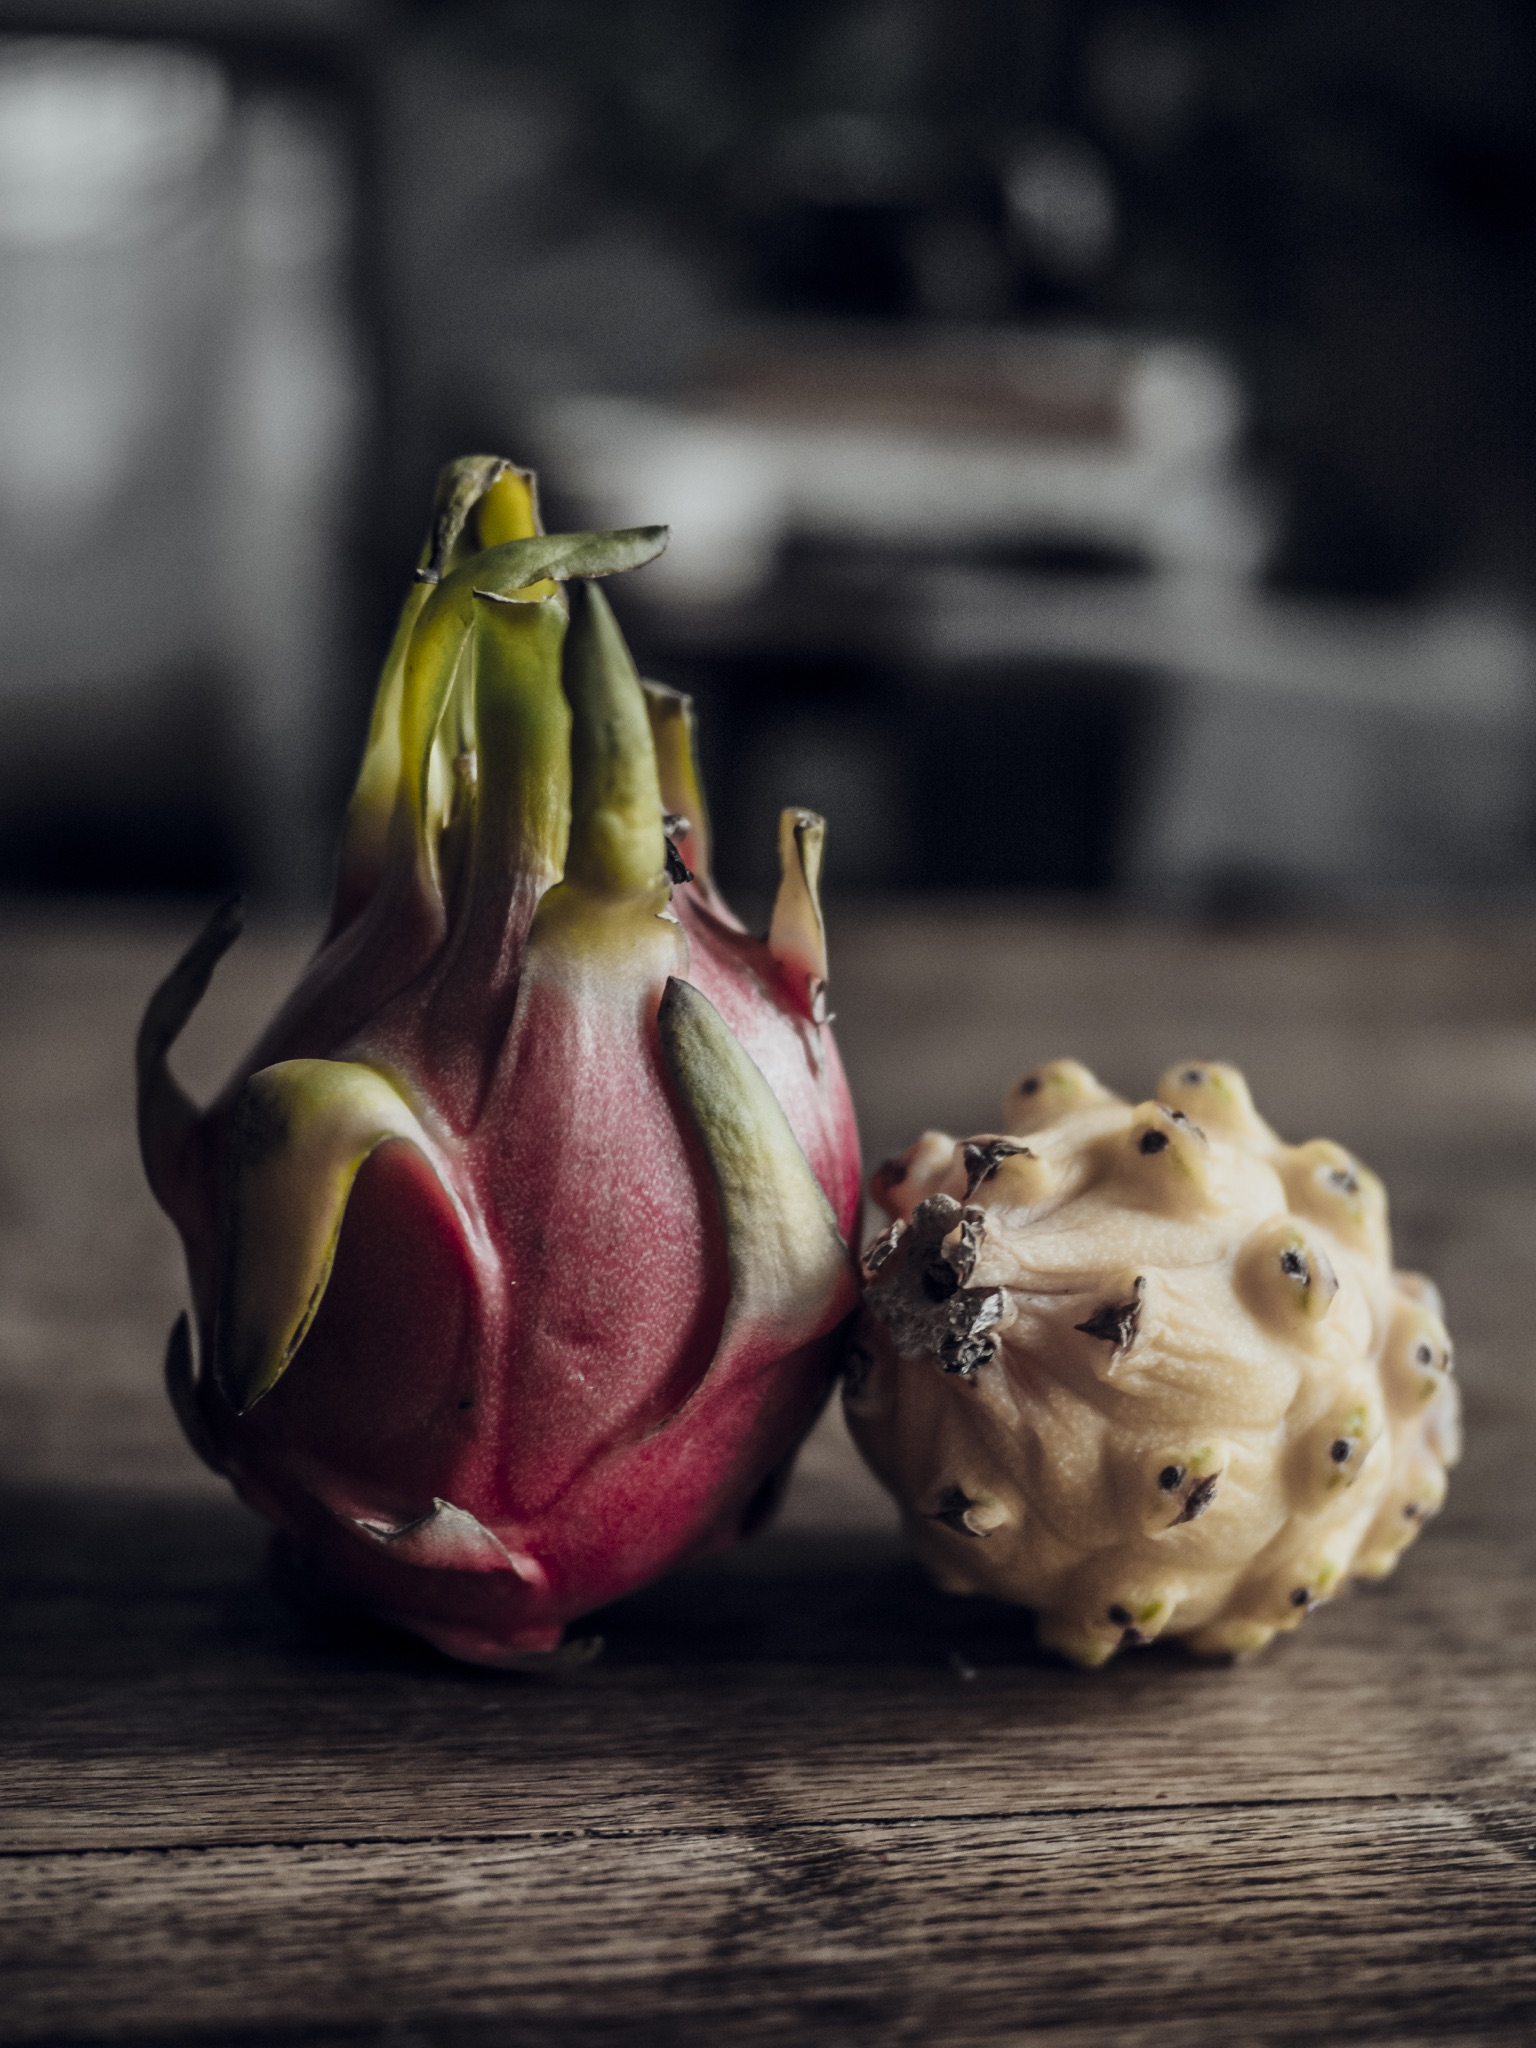 Weird Fruit Dragon Fruit